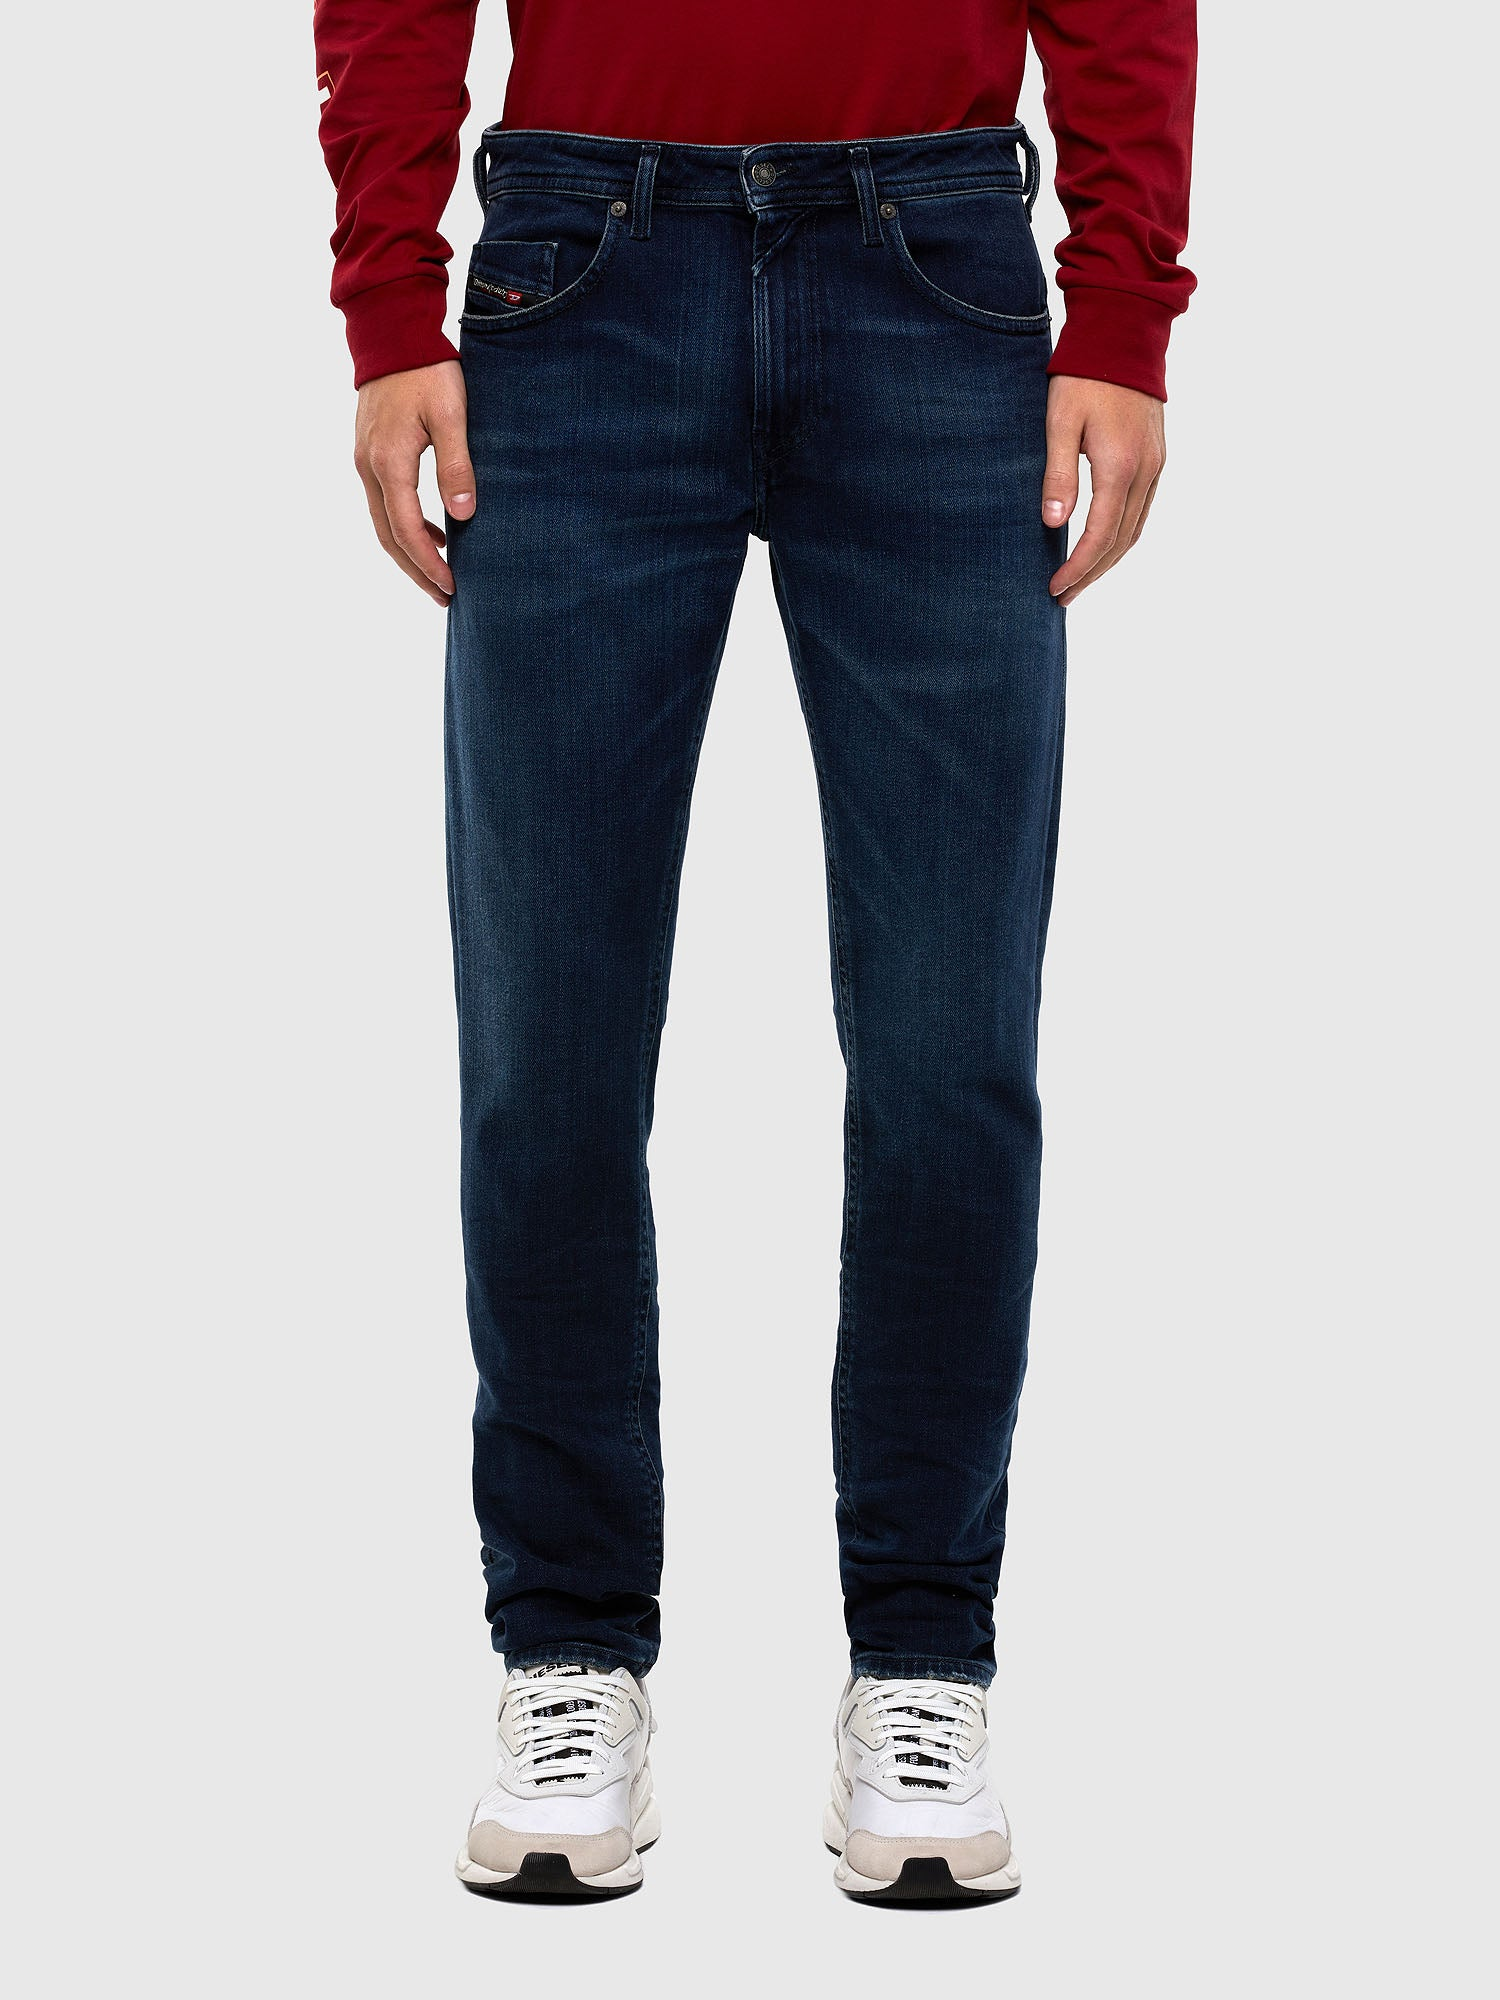 Diesel Thommer Jeans Slim Fit - Mid Blue 009JE